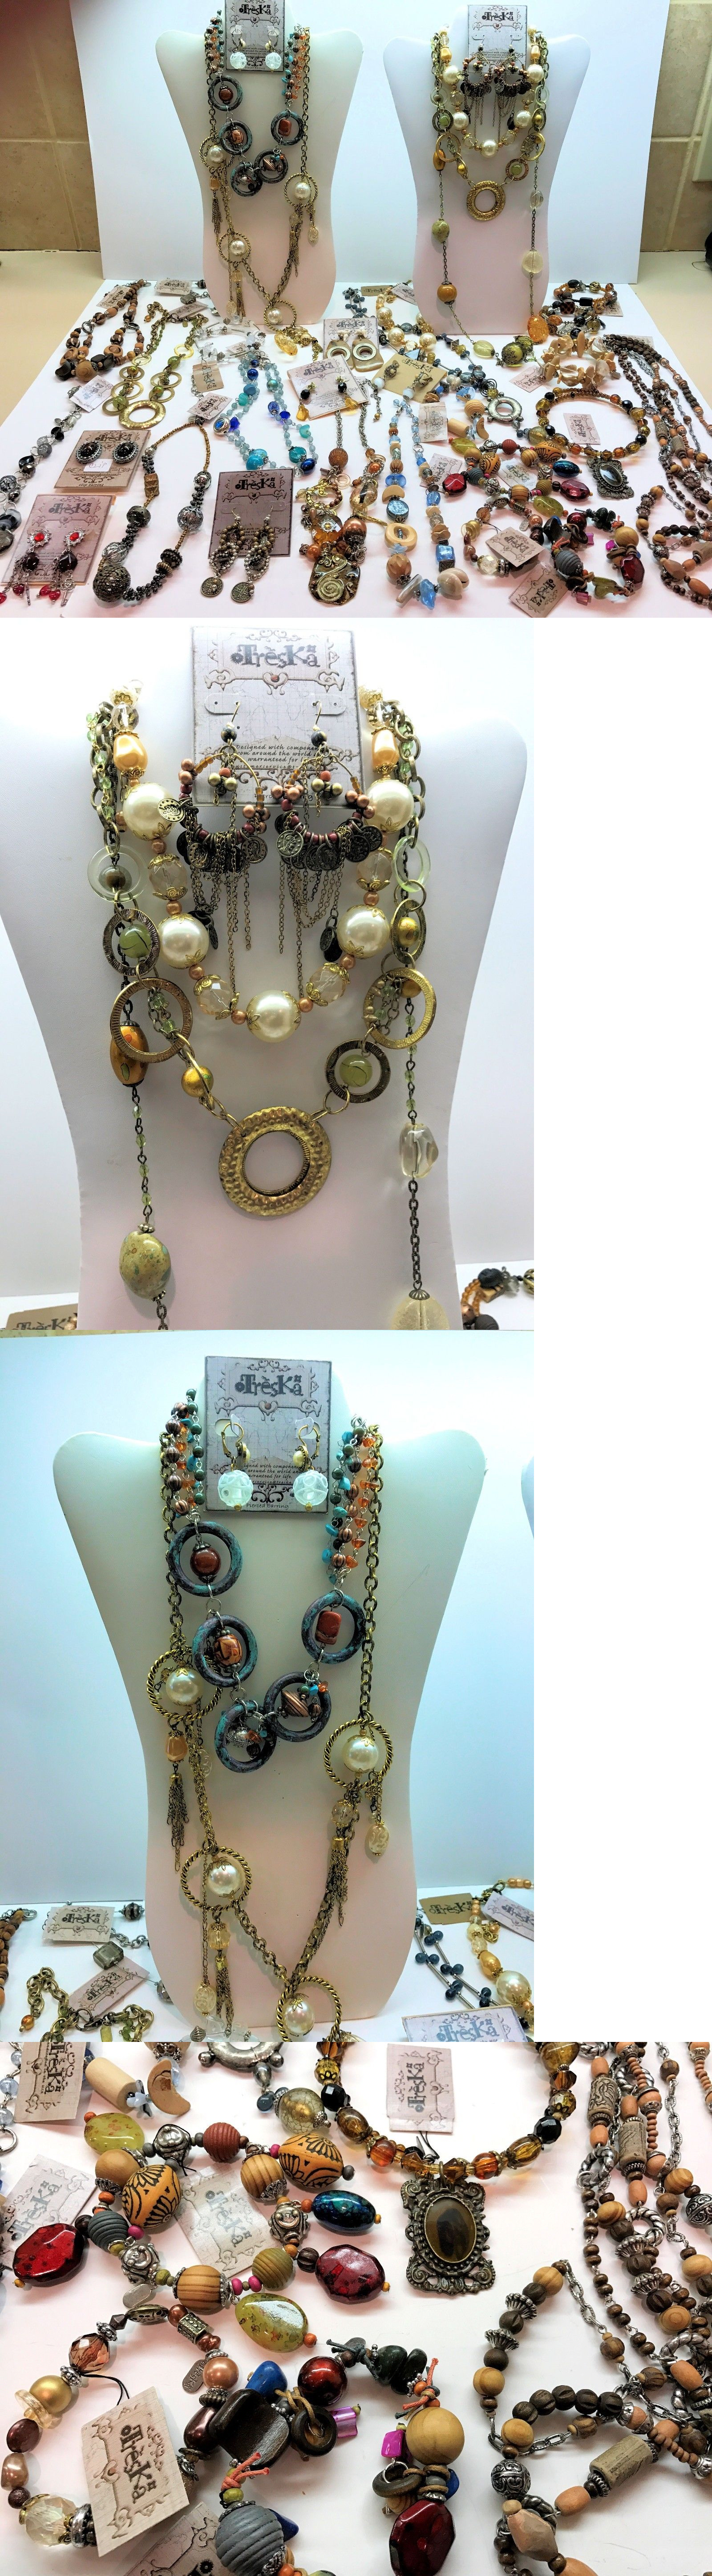 Buy Cheap Mixed Lot Of Necklaces. Costume Jewellery